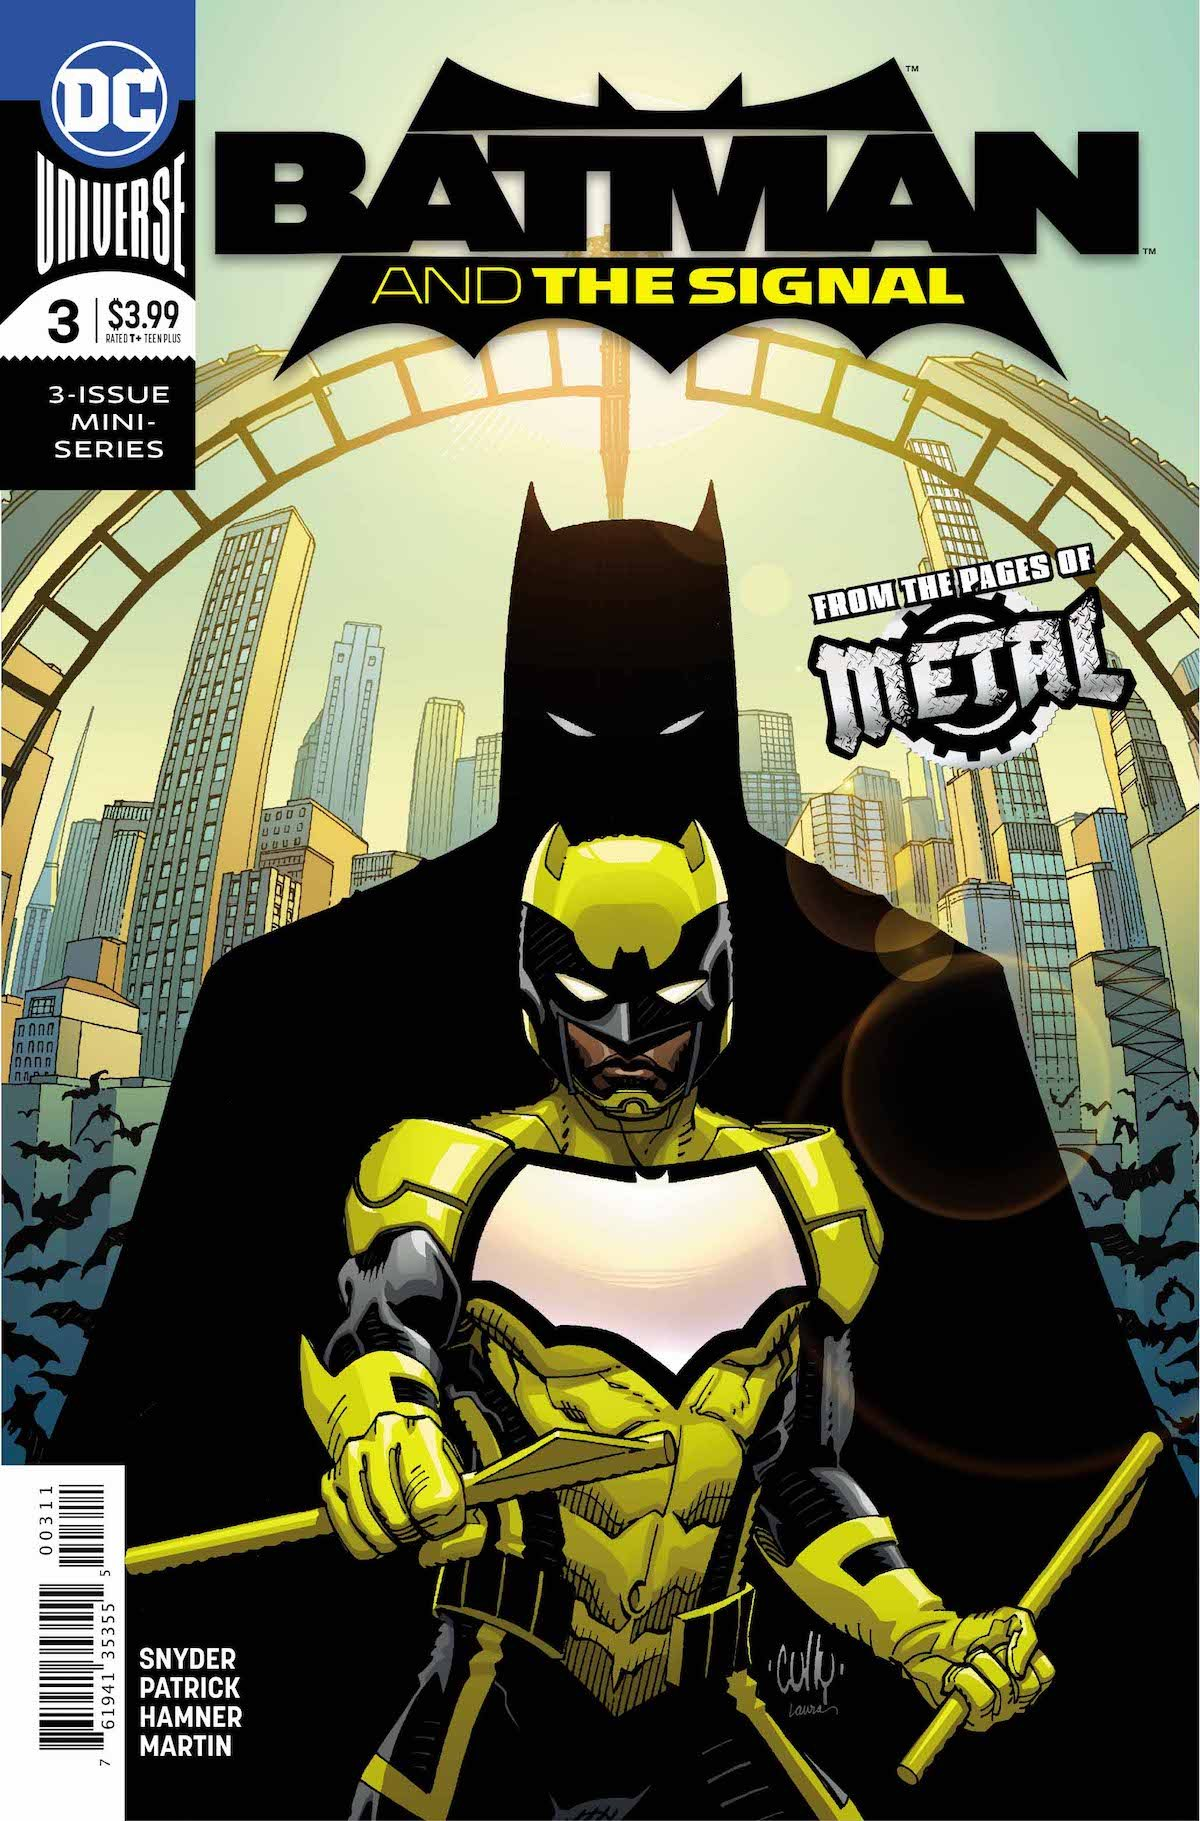 Batman and the Signal #3 cover